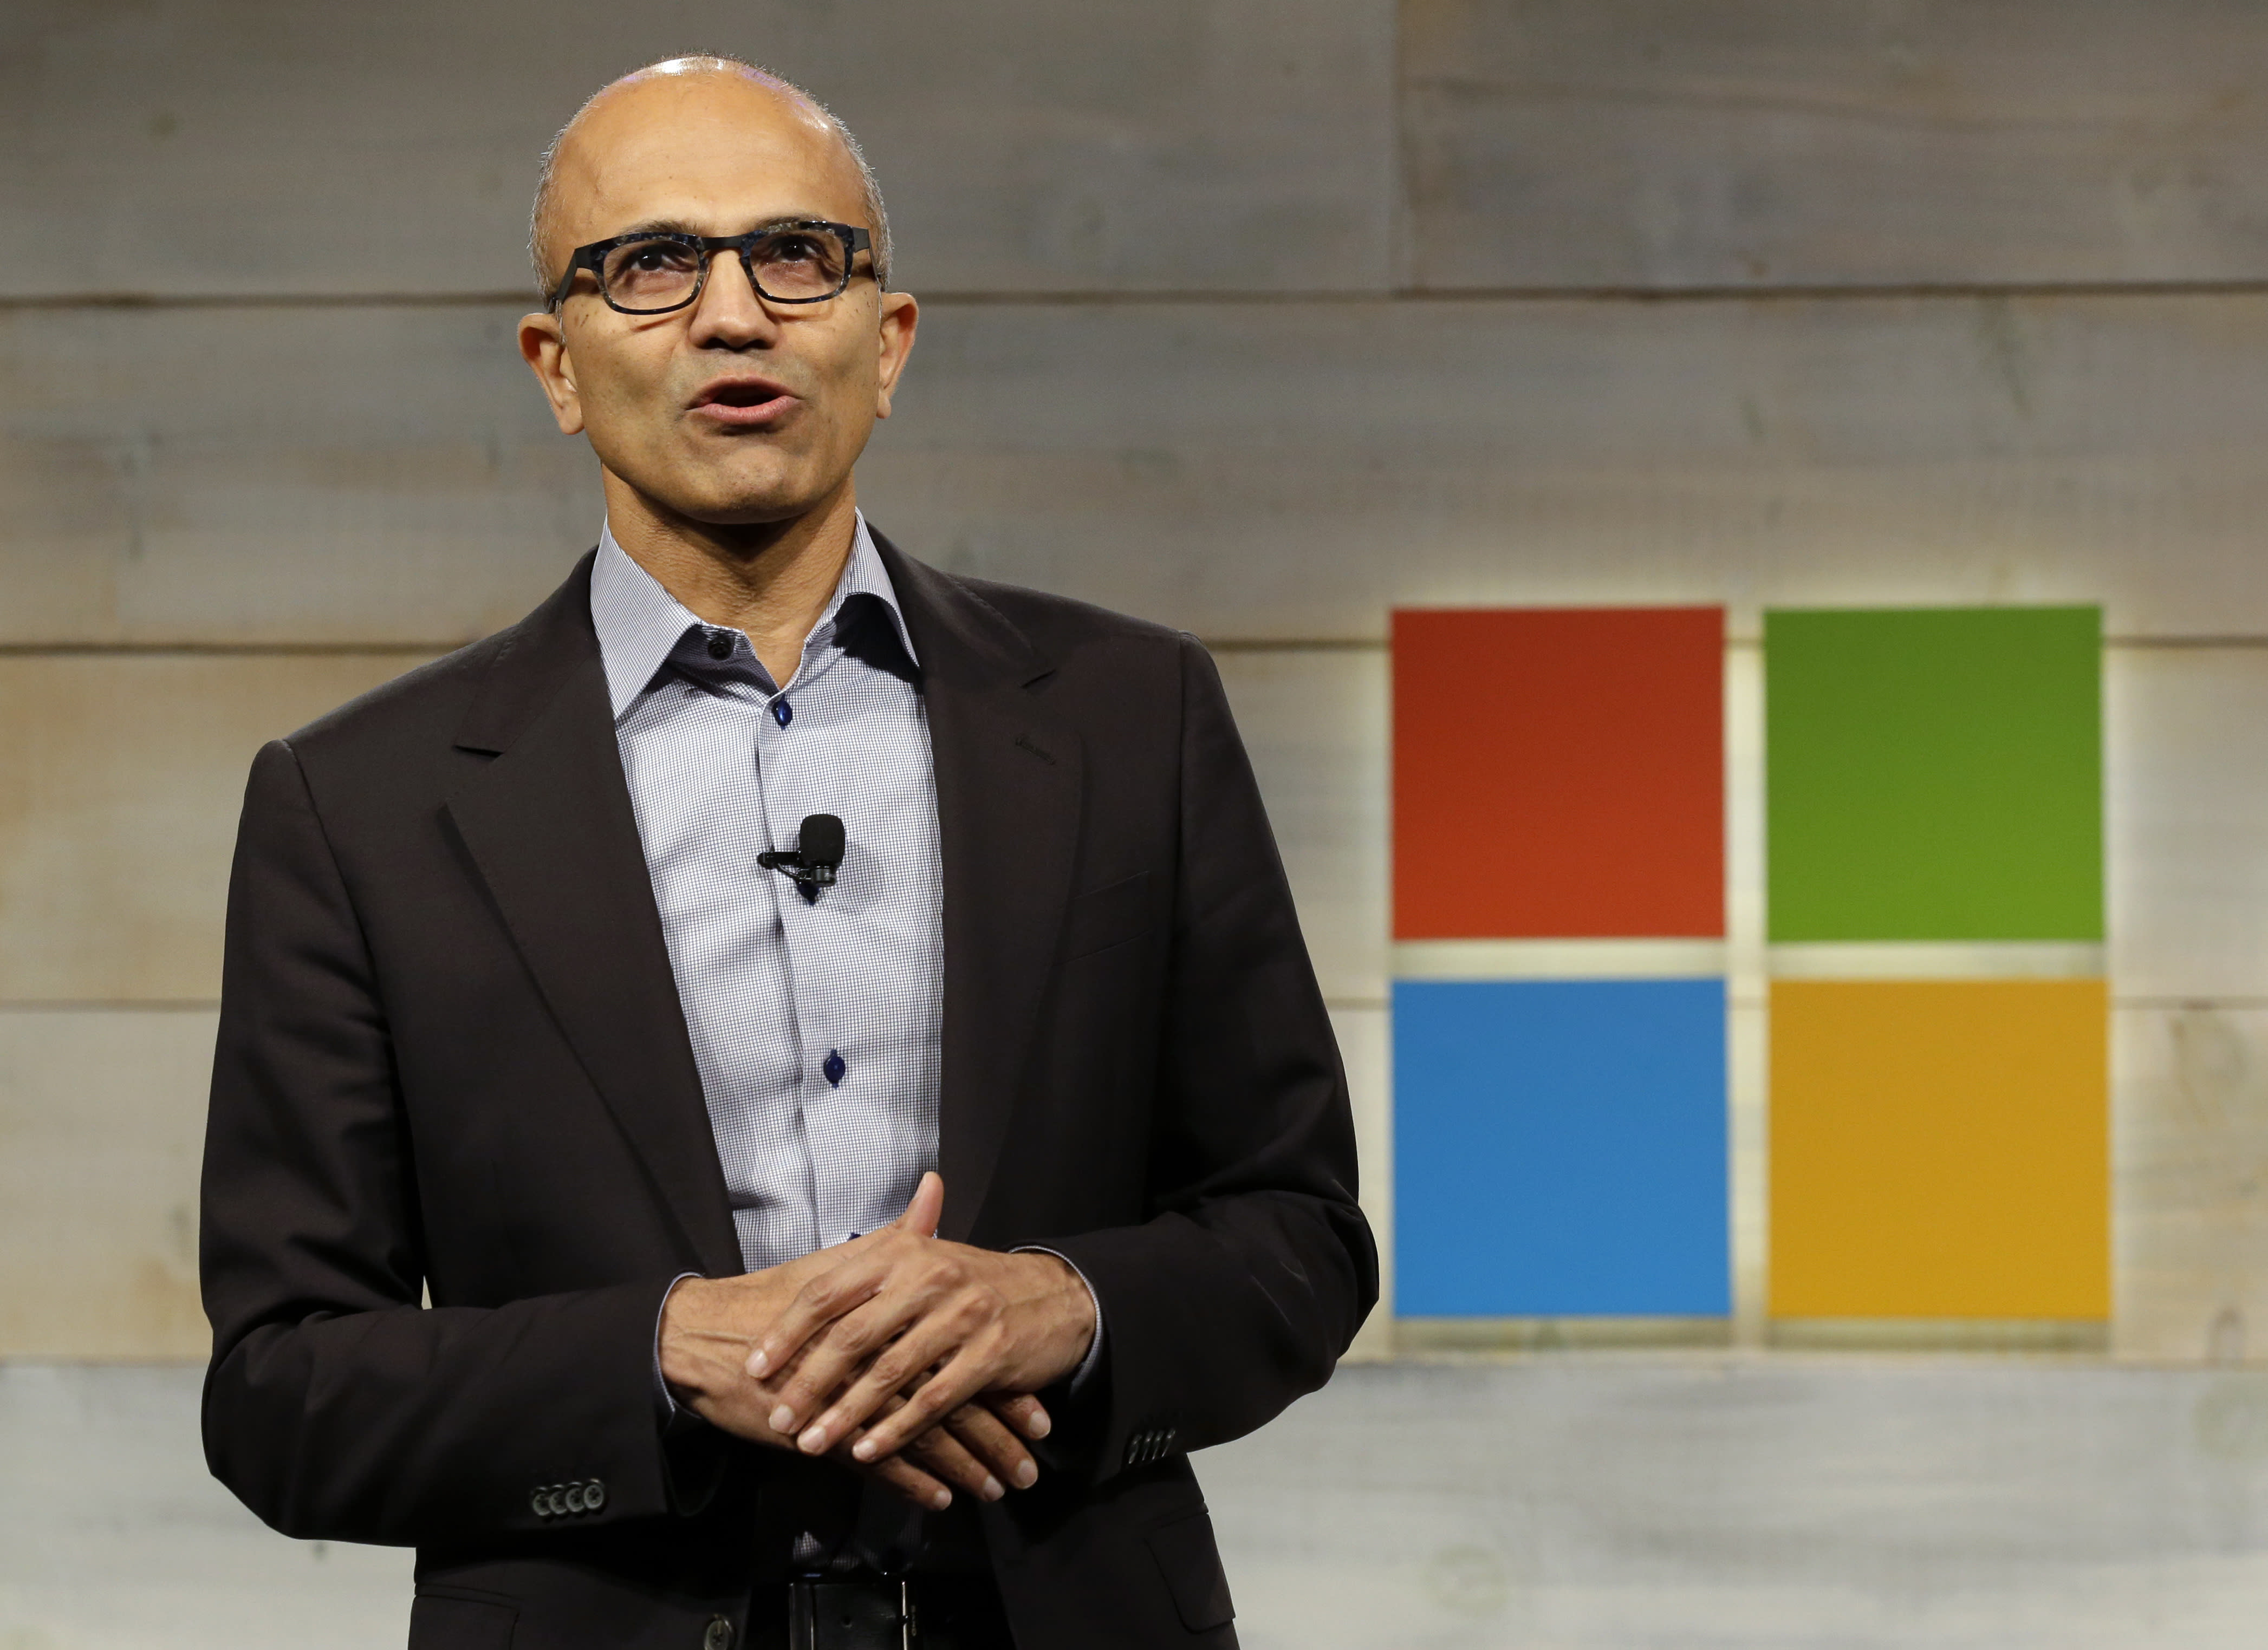 Microsoft's CEO shared a surprising motive for the coolest feature in its new phones